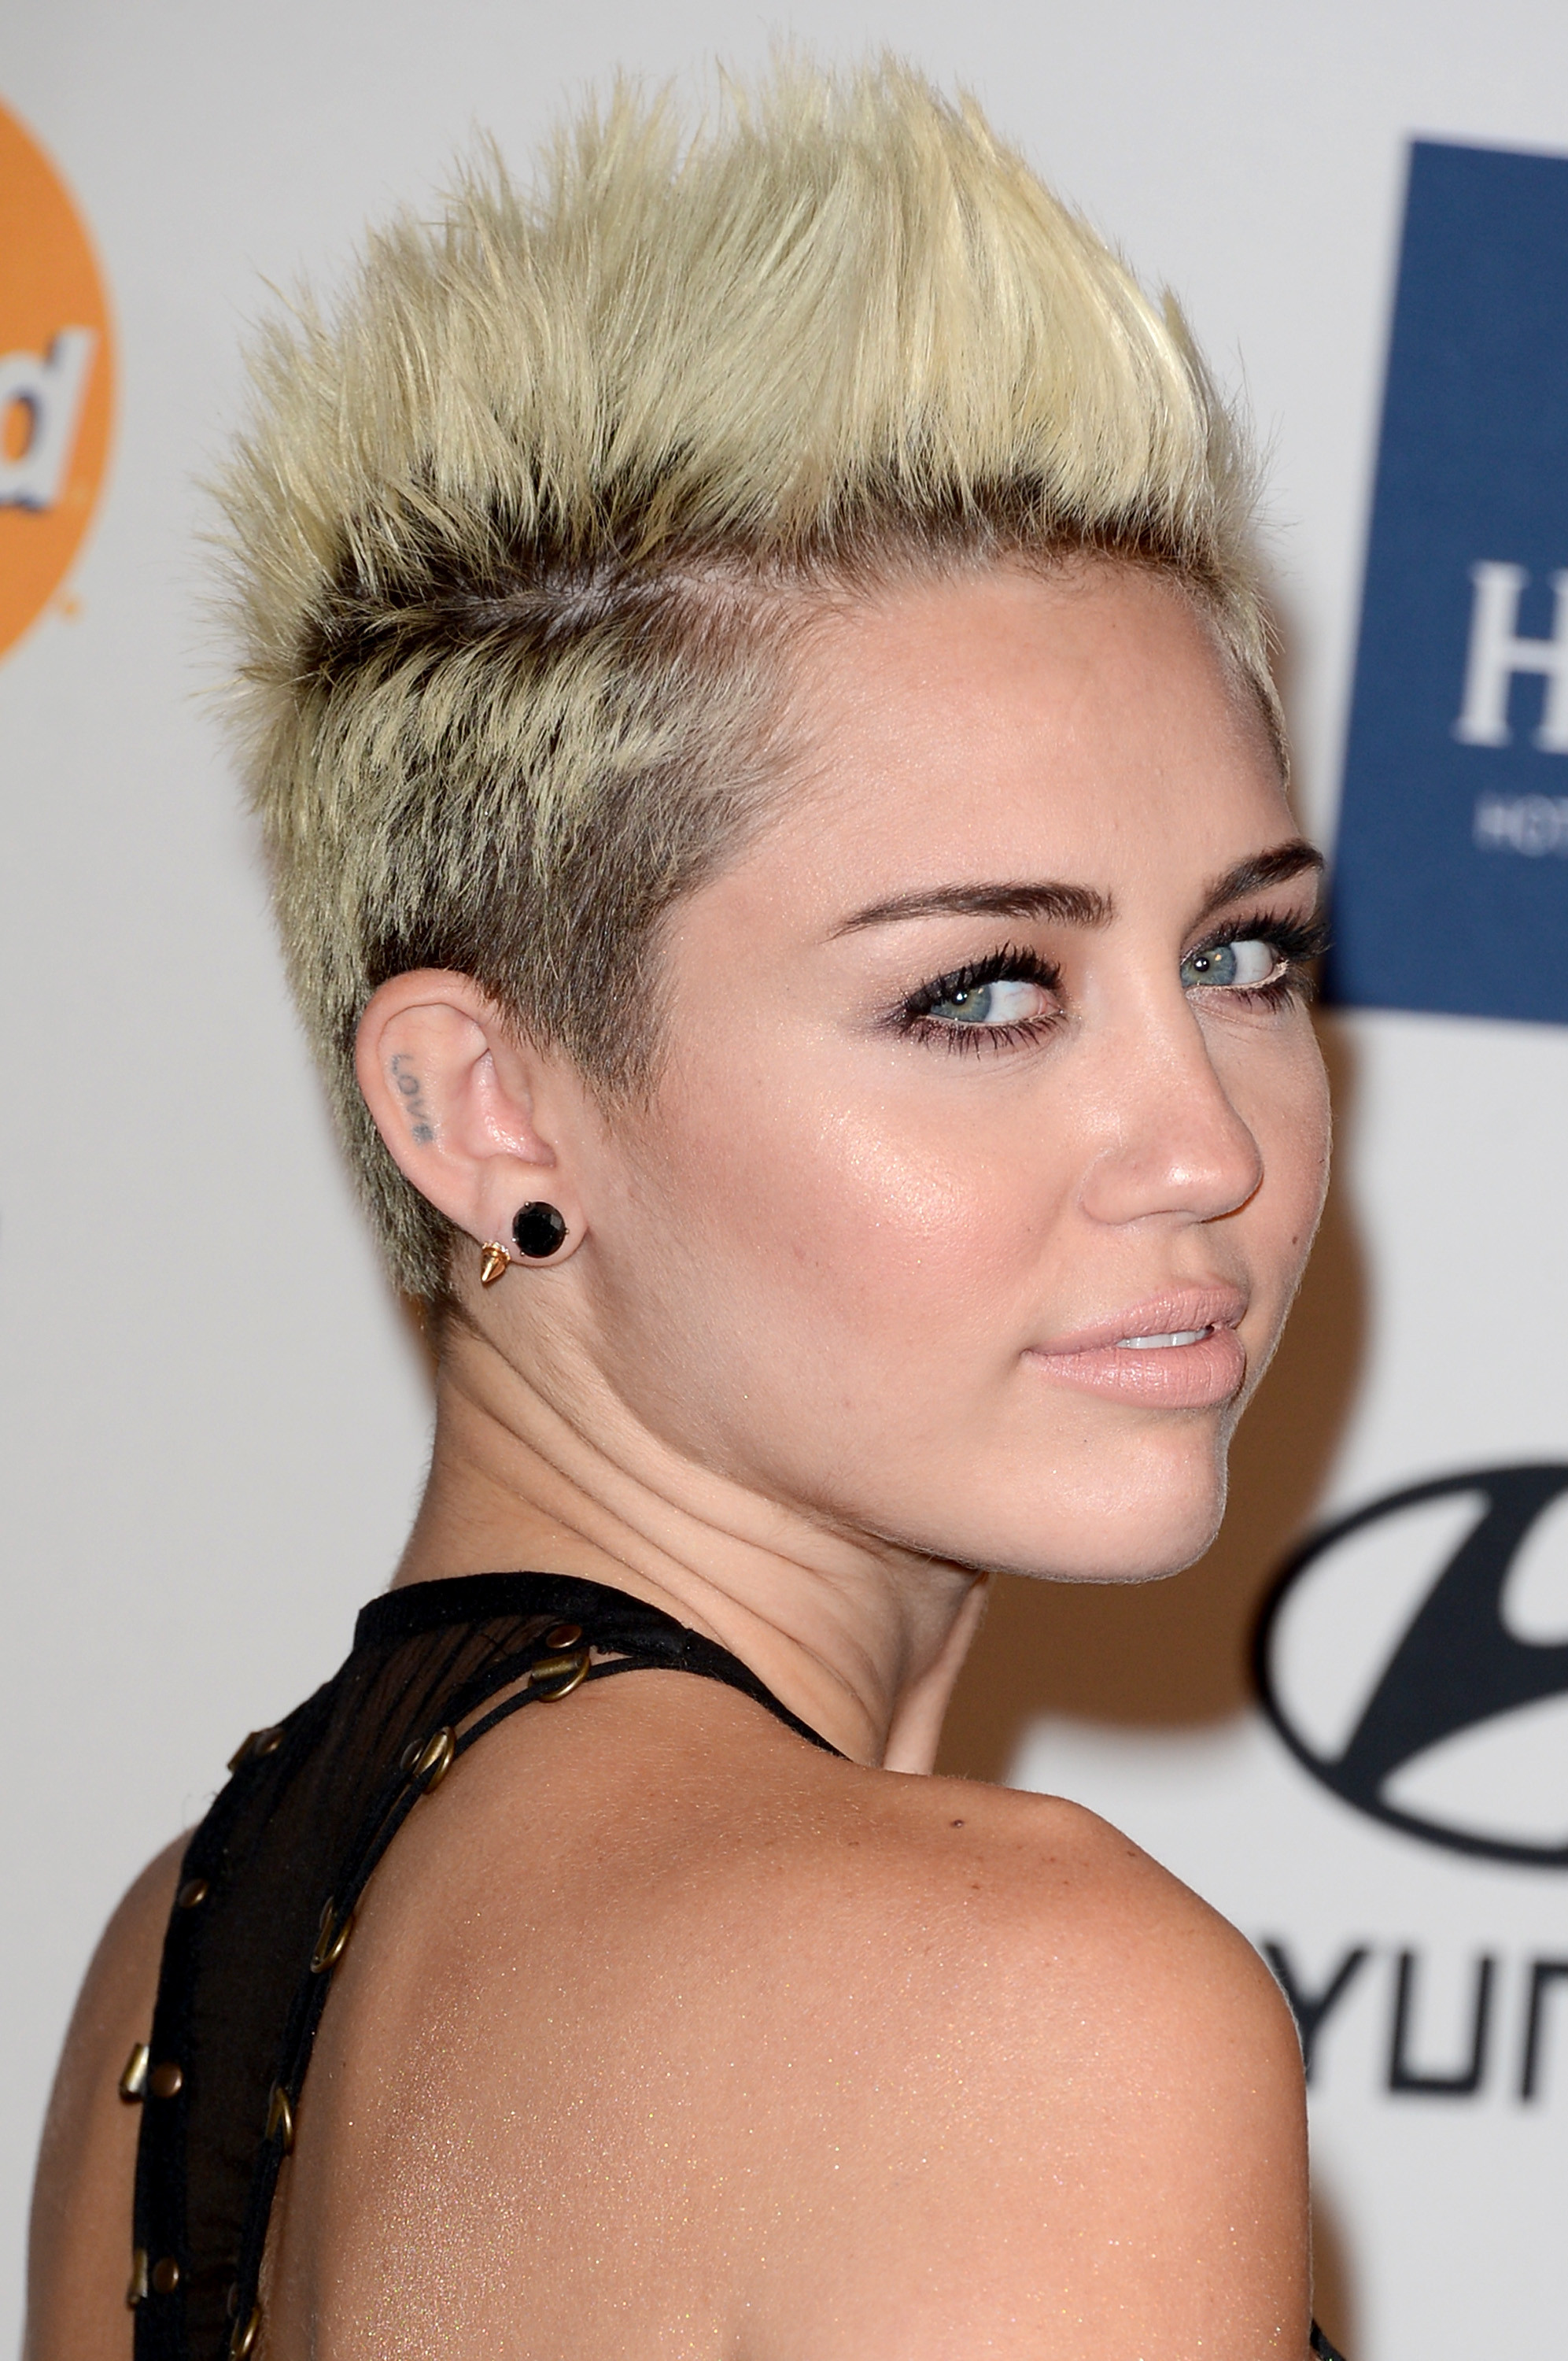 Hairstyles For Short Haircuts  25 Prom Hairstyles For Short Hair The Xerxes